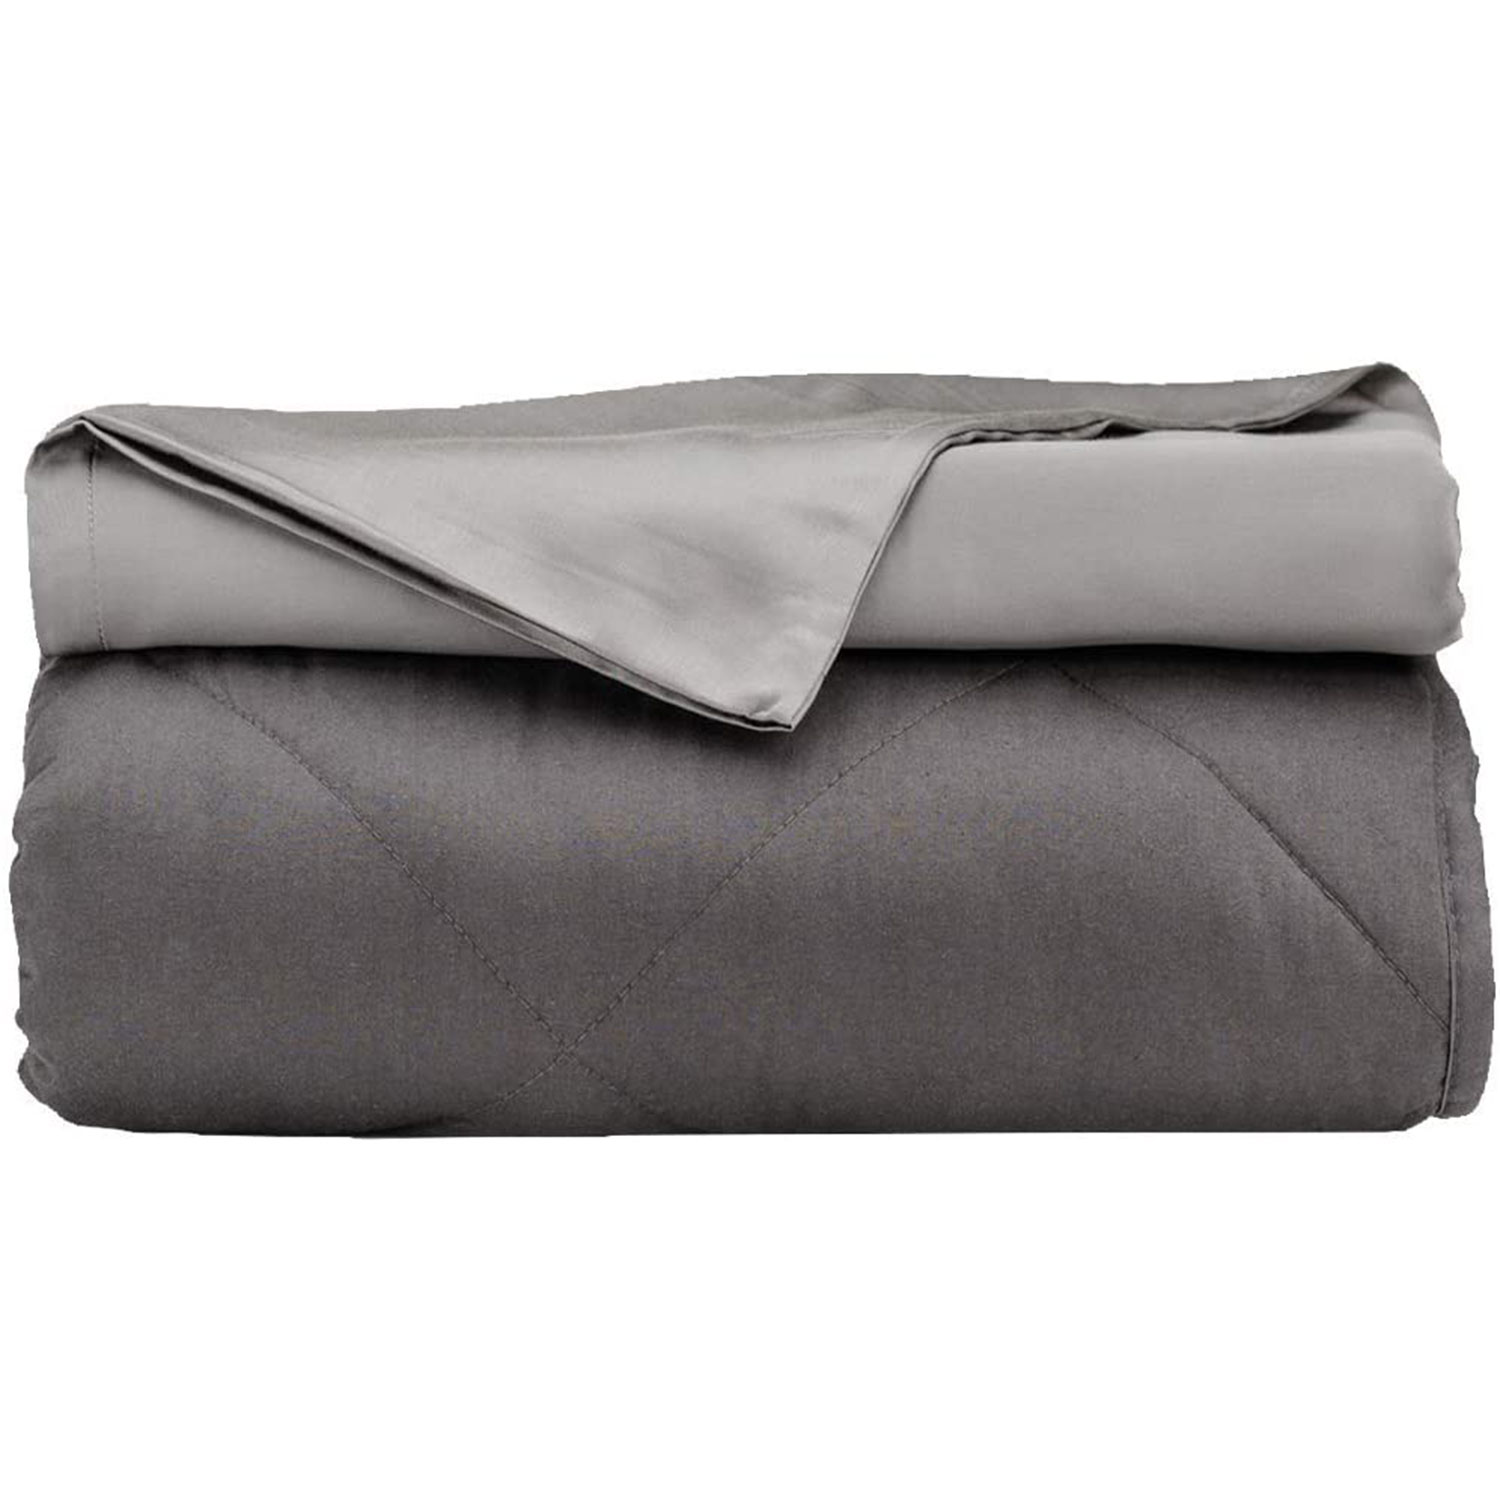 luxury cooling weighted blanket